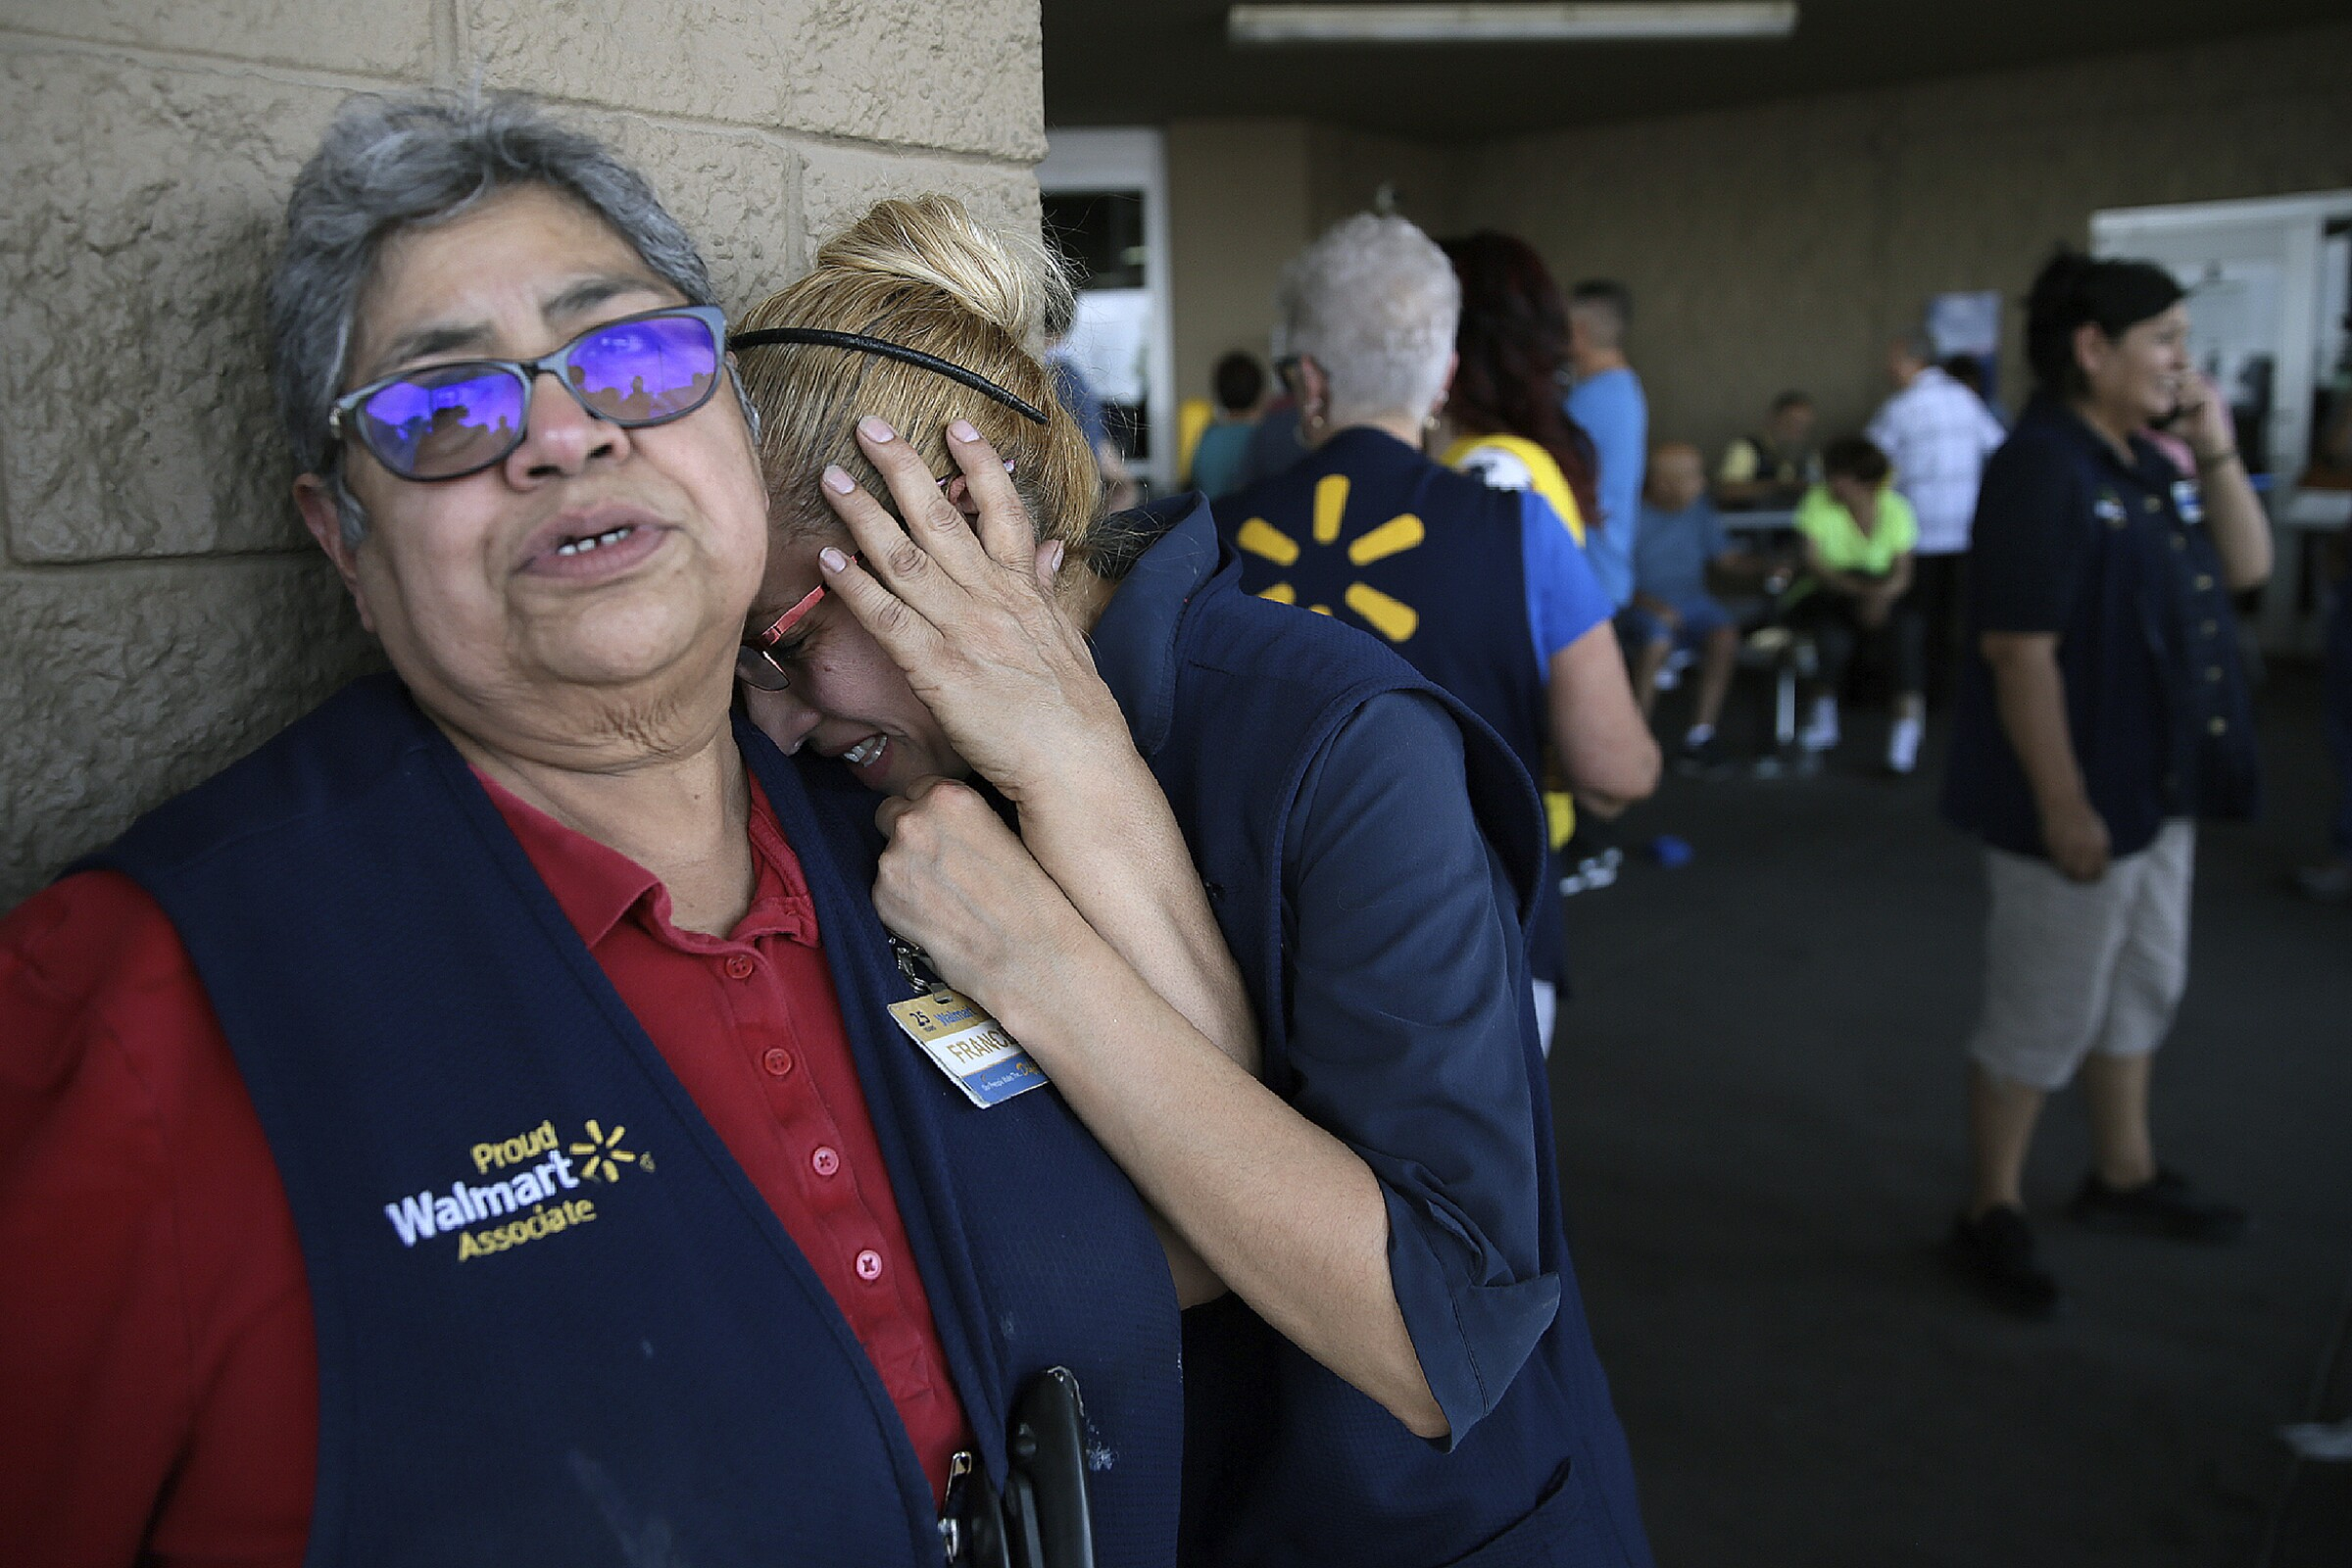 Walmart employees react after shooting in El Paso